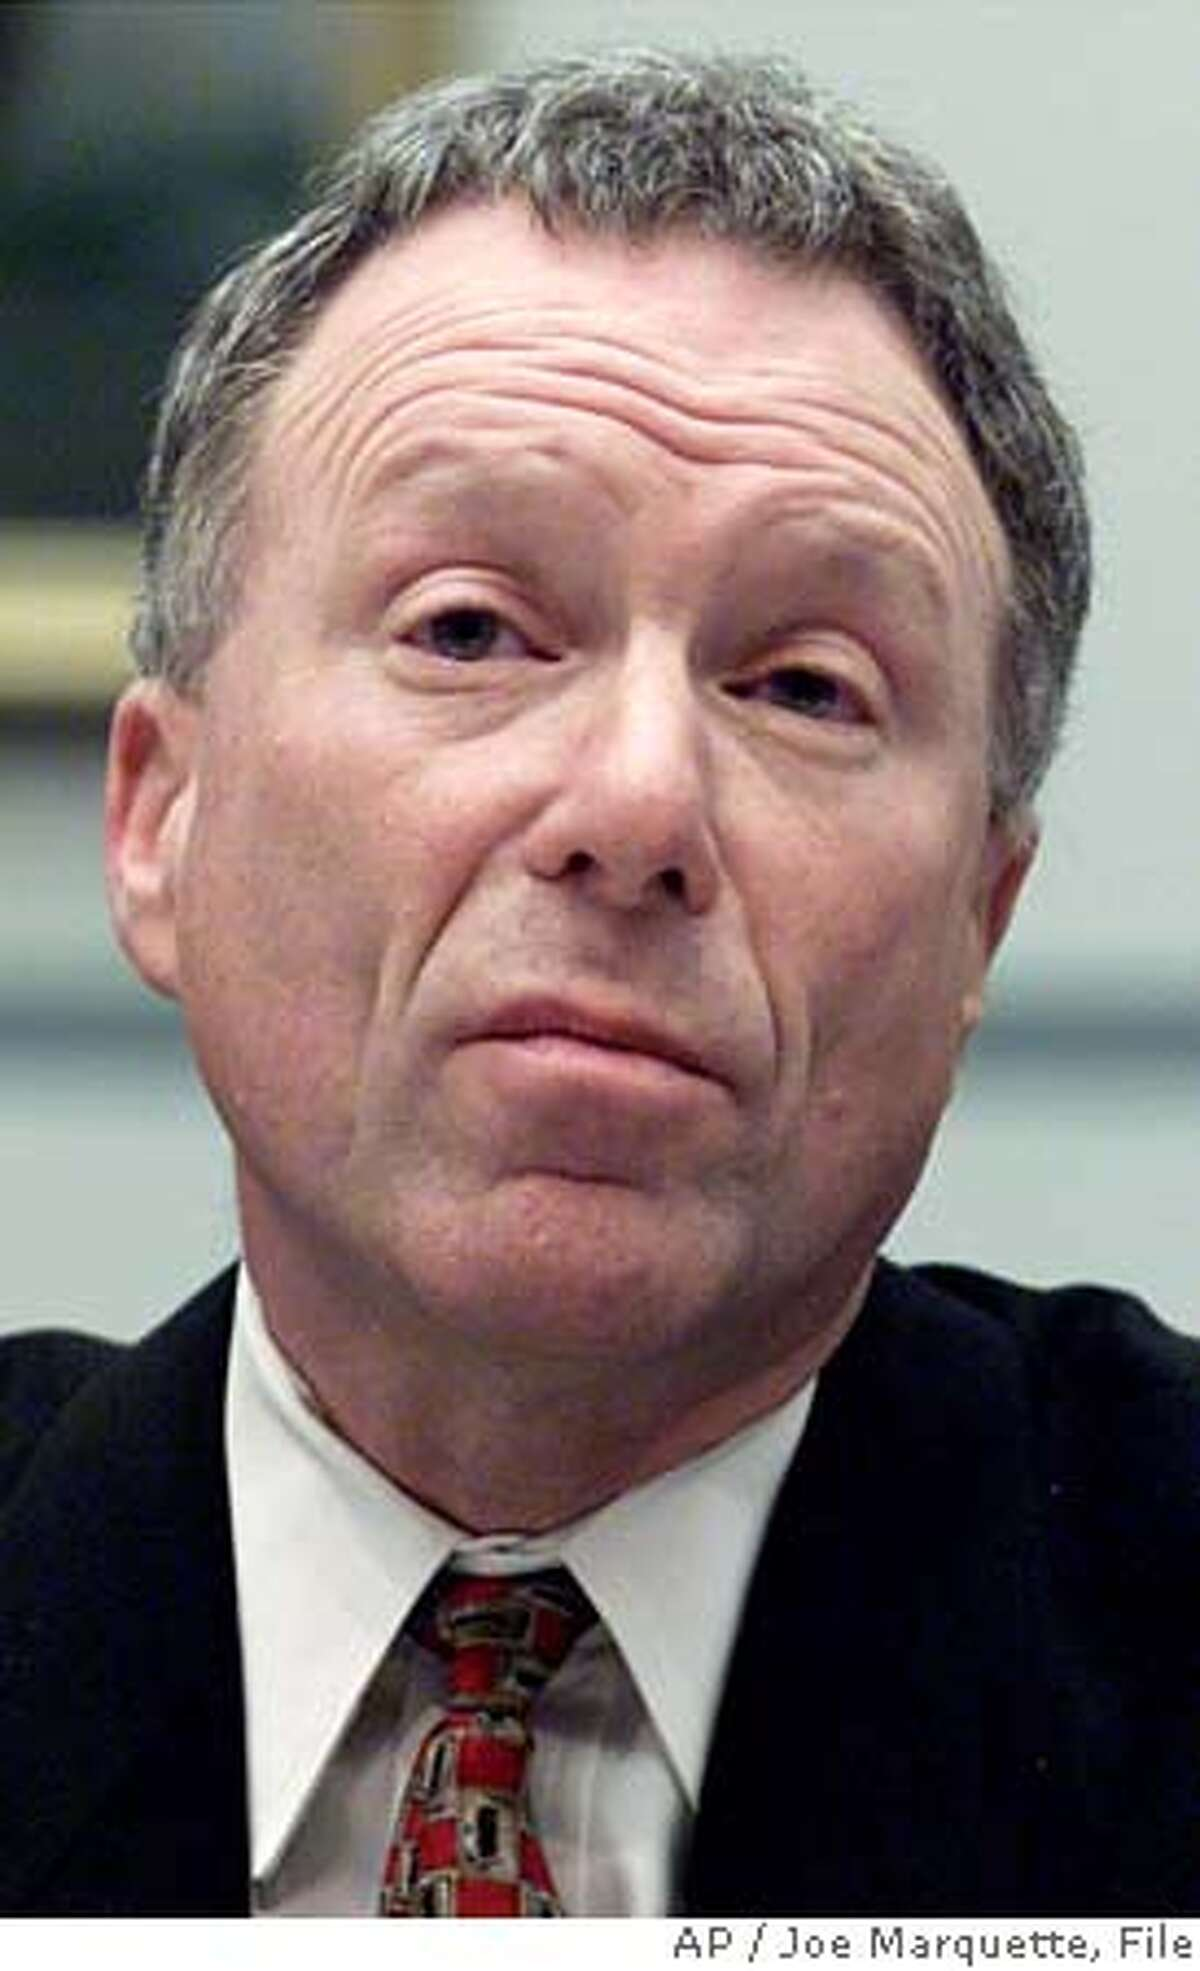 ** FILE ** Lewis Libby testifies during a House Government Reform Committee hearing in this Thursday, March 1, 2001 file photo, in Washington. Libby was a source along with President Bush's chief political adviser for a Time story that identified a CIA officer, the magazine reporter said Sunday, July 17, 2005, further countering White House claims that neither aide was involved in the leak. (AP Photo/Joe Marquette) MARCH 1, 2001 FILE PHOTO